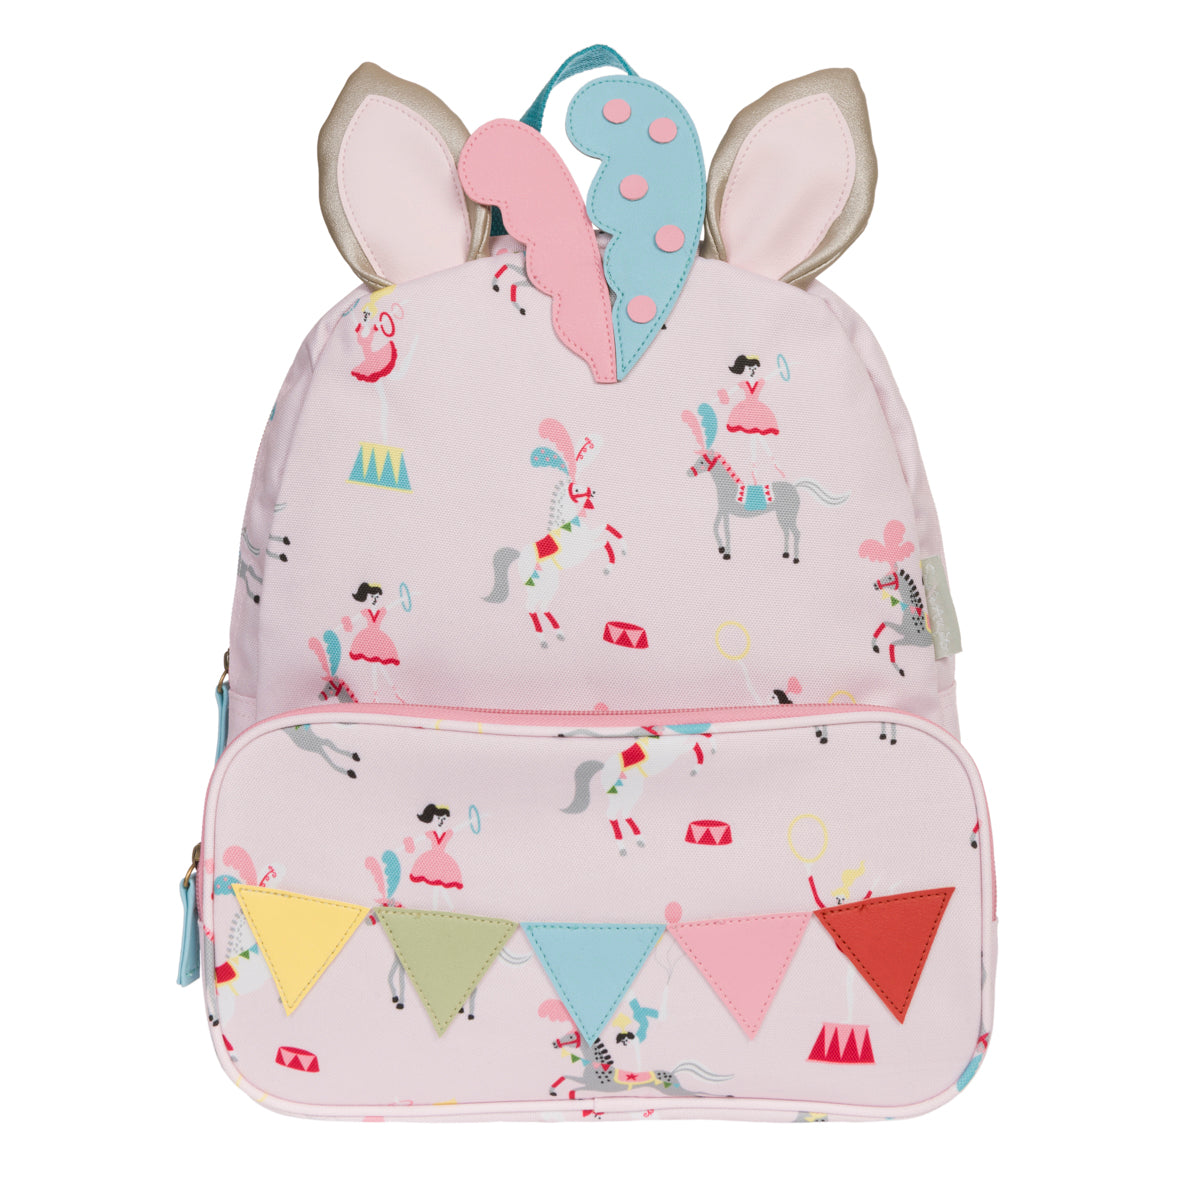 Fairground Ponies Backpack by Sophie Allport